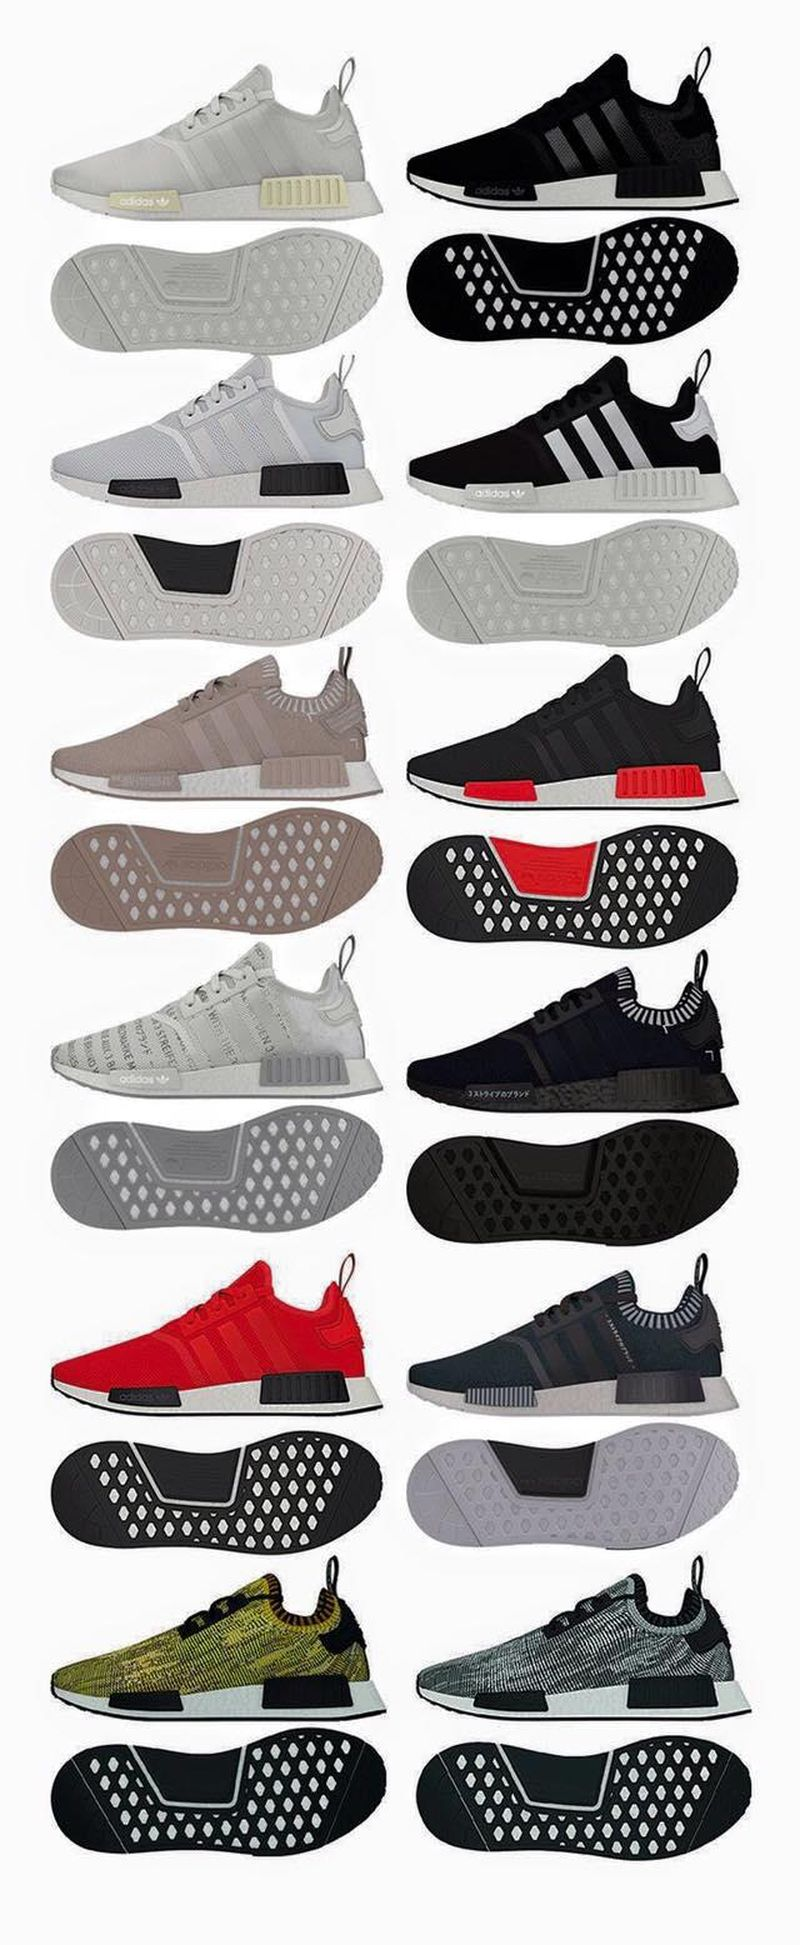 adidas-nmd-boost_02